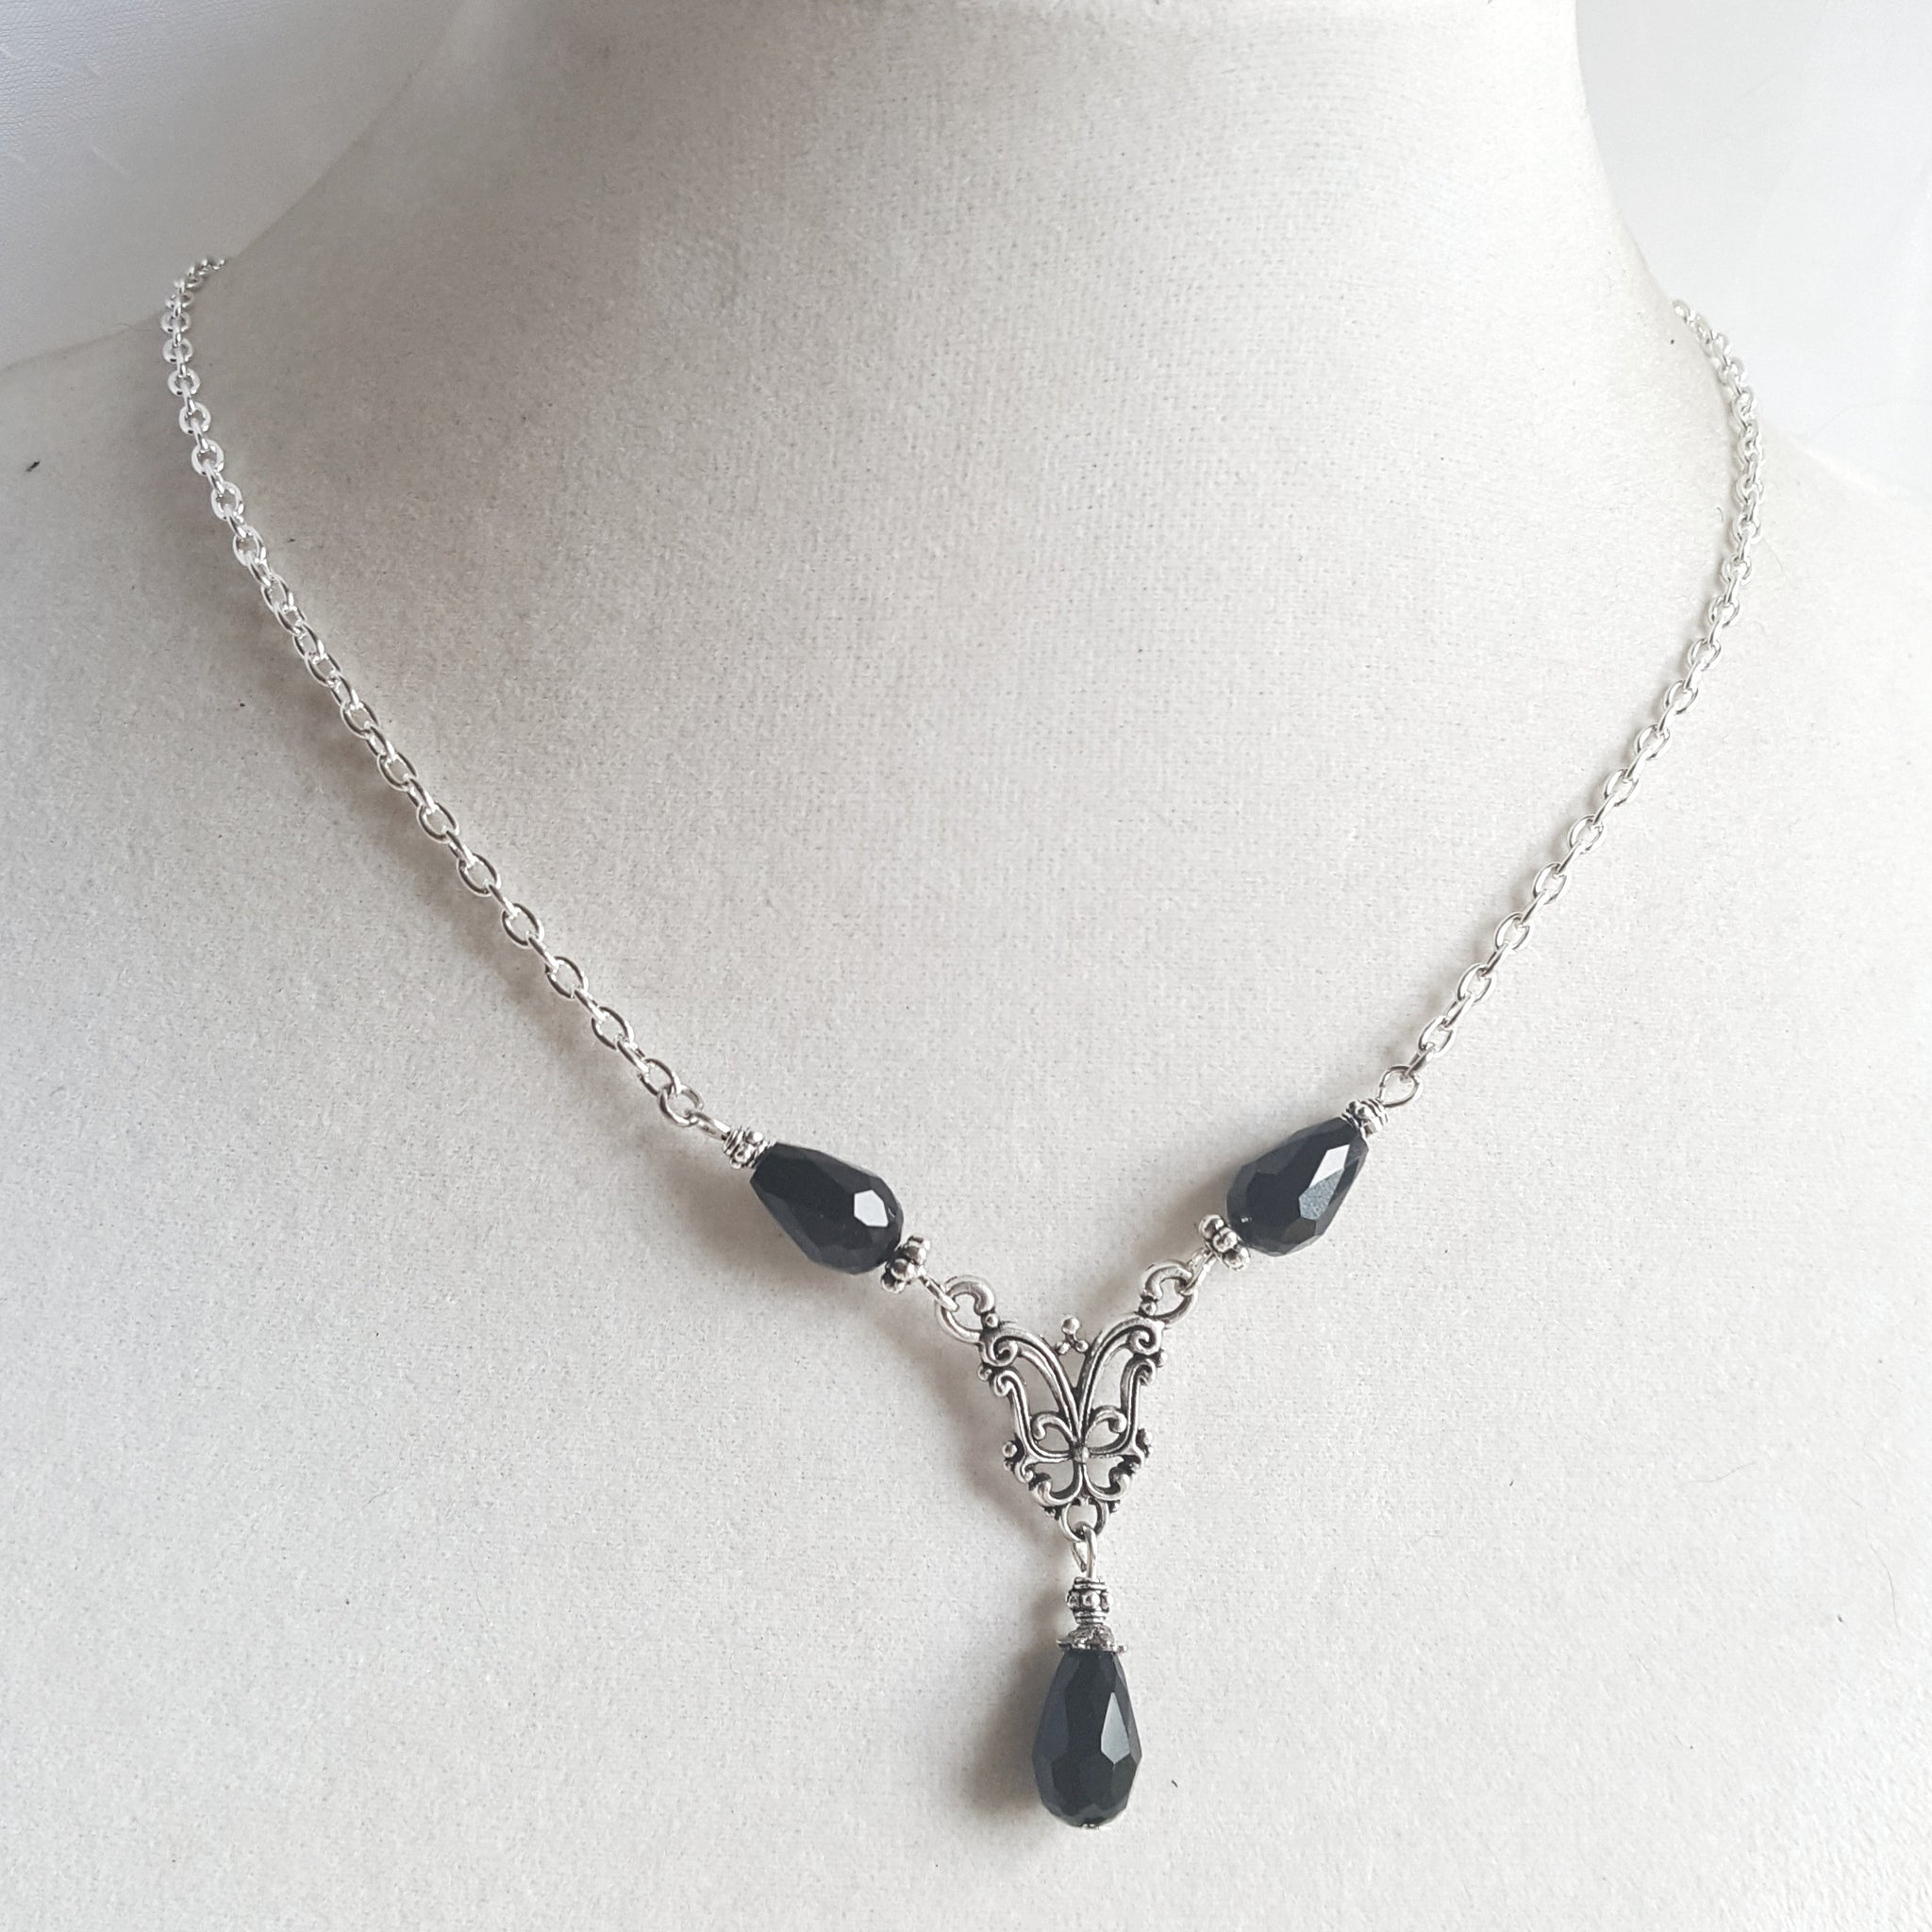 Black Gothic Teardrops Necklace Victorian Jewelry - DRAVYNMOOR